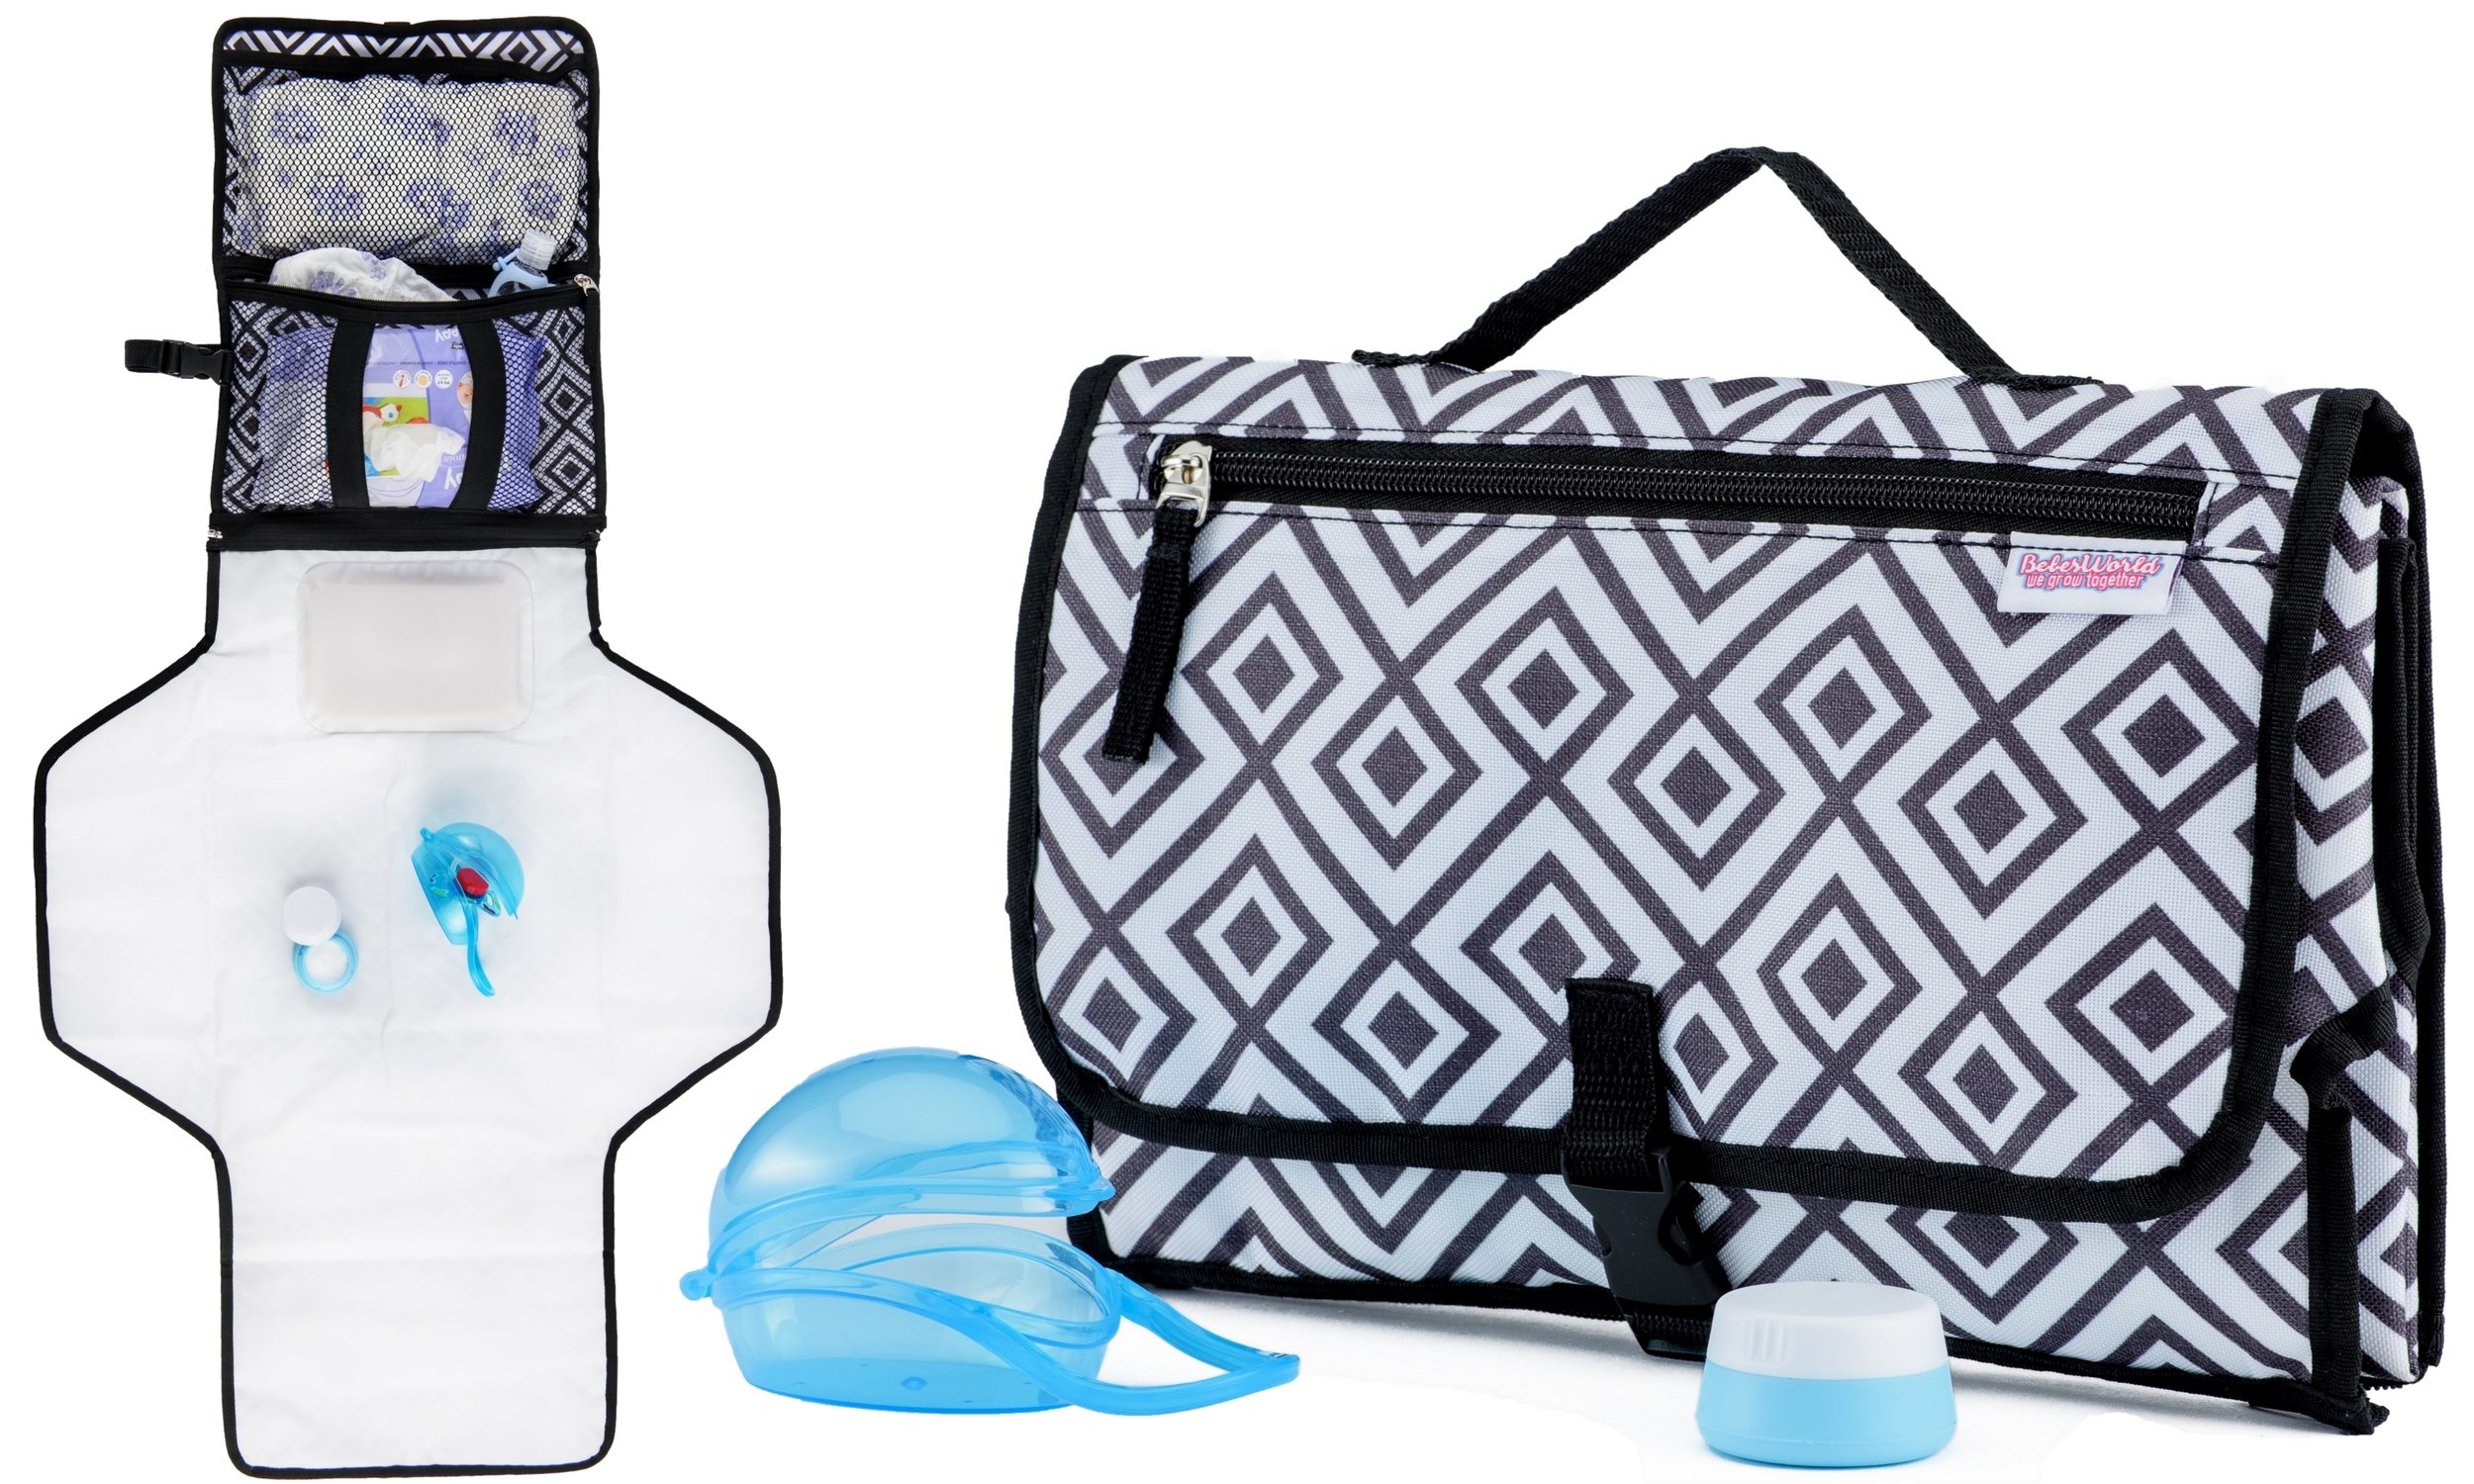 Portable Diaper Changing Pad with Soft Head Pillow | Bonus Pacifier Case & Silicone Baby Cream Container | Waterproof Change Pad | Travel Changing Station Kit | Diapers & Wipes Pockets | by BebesWorld